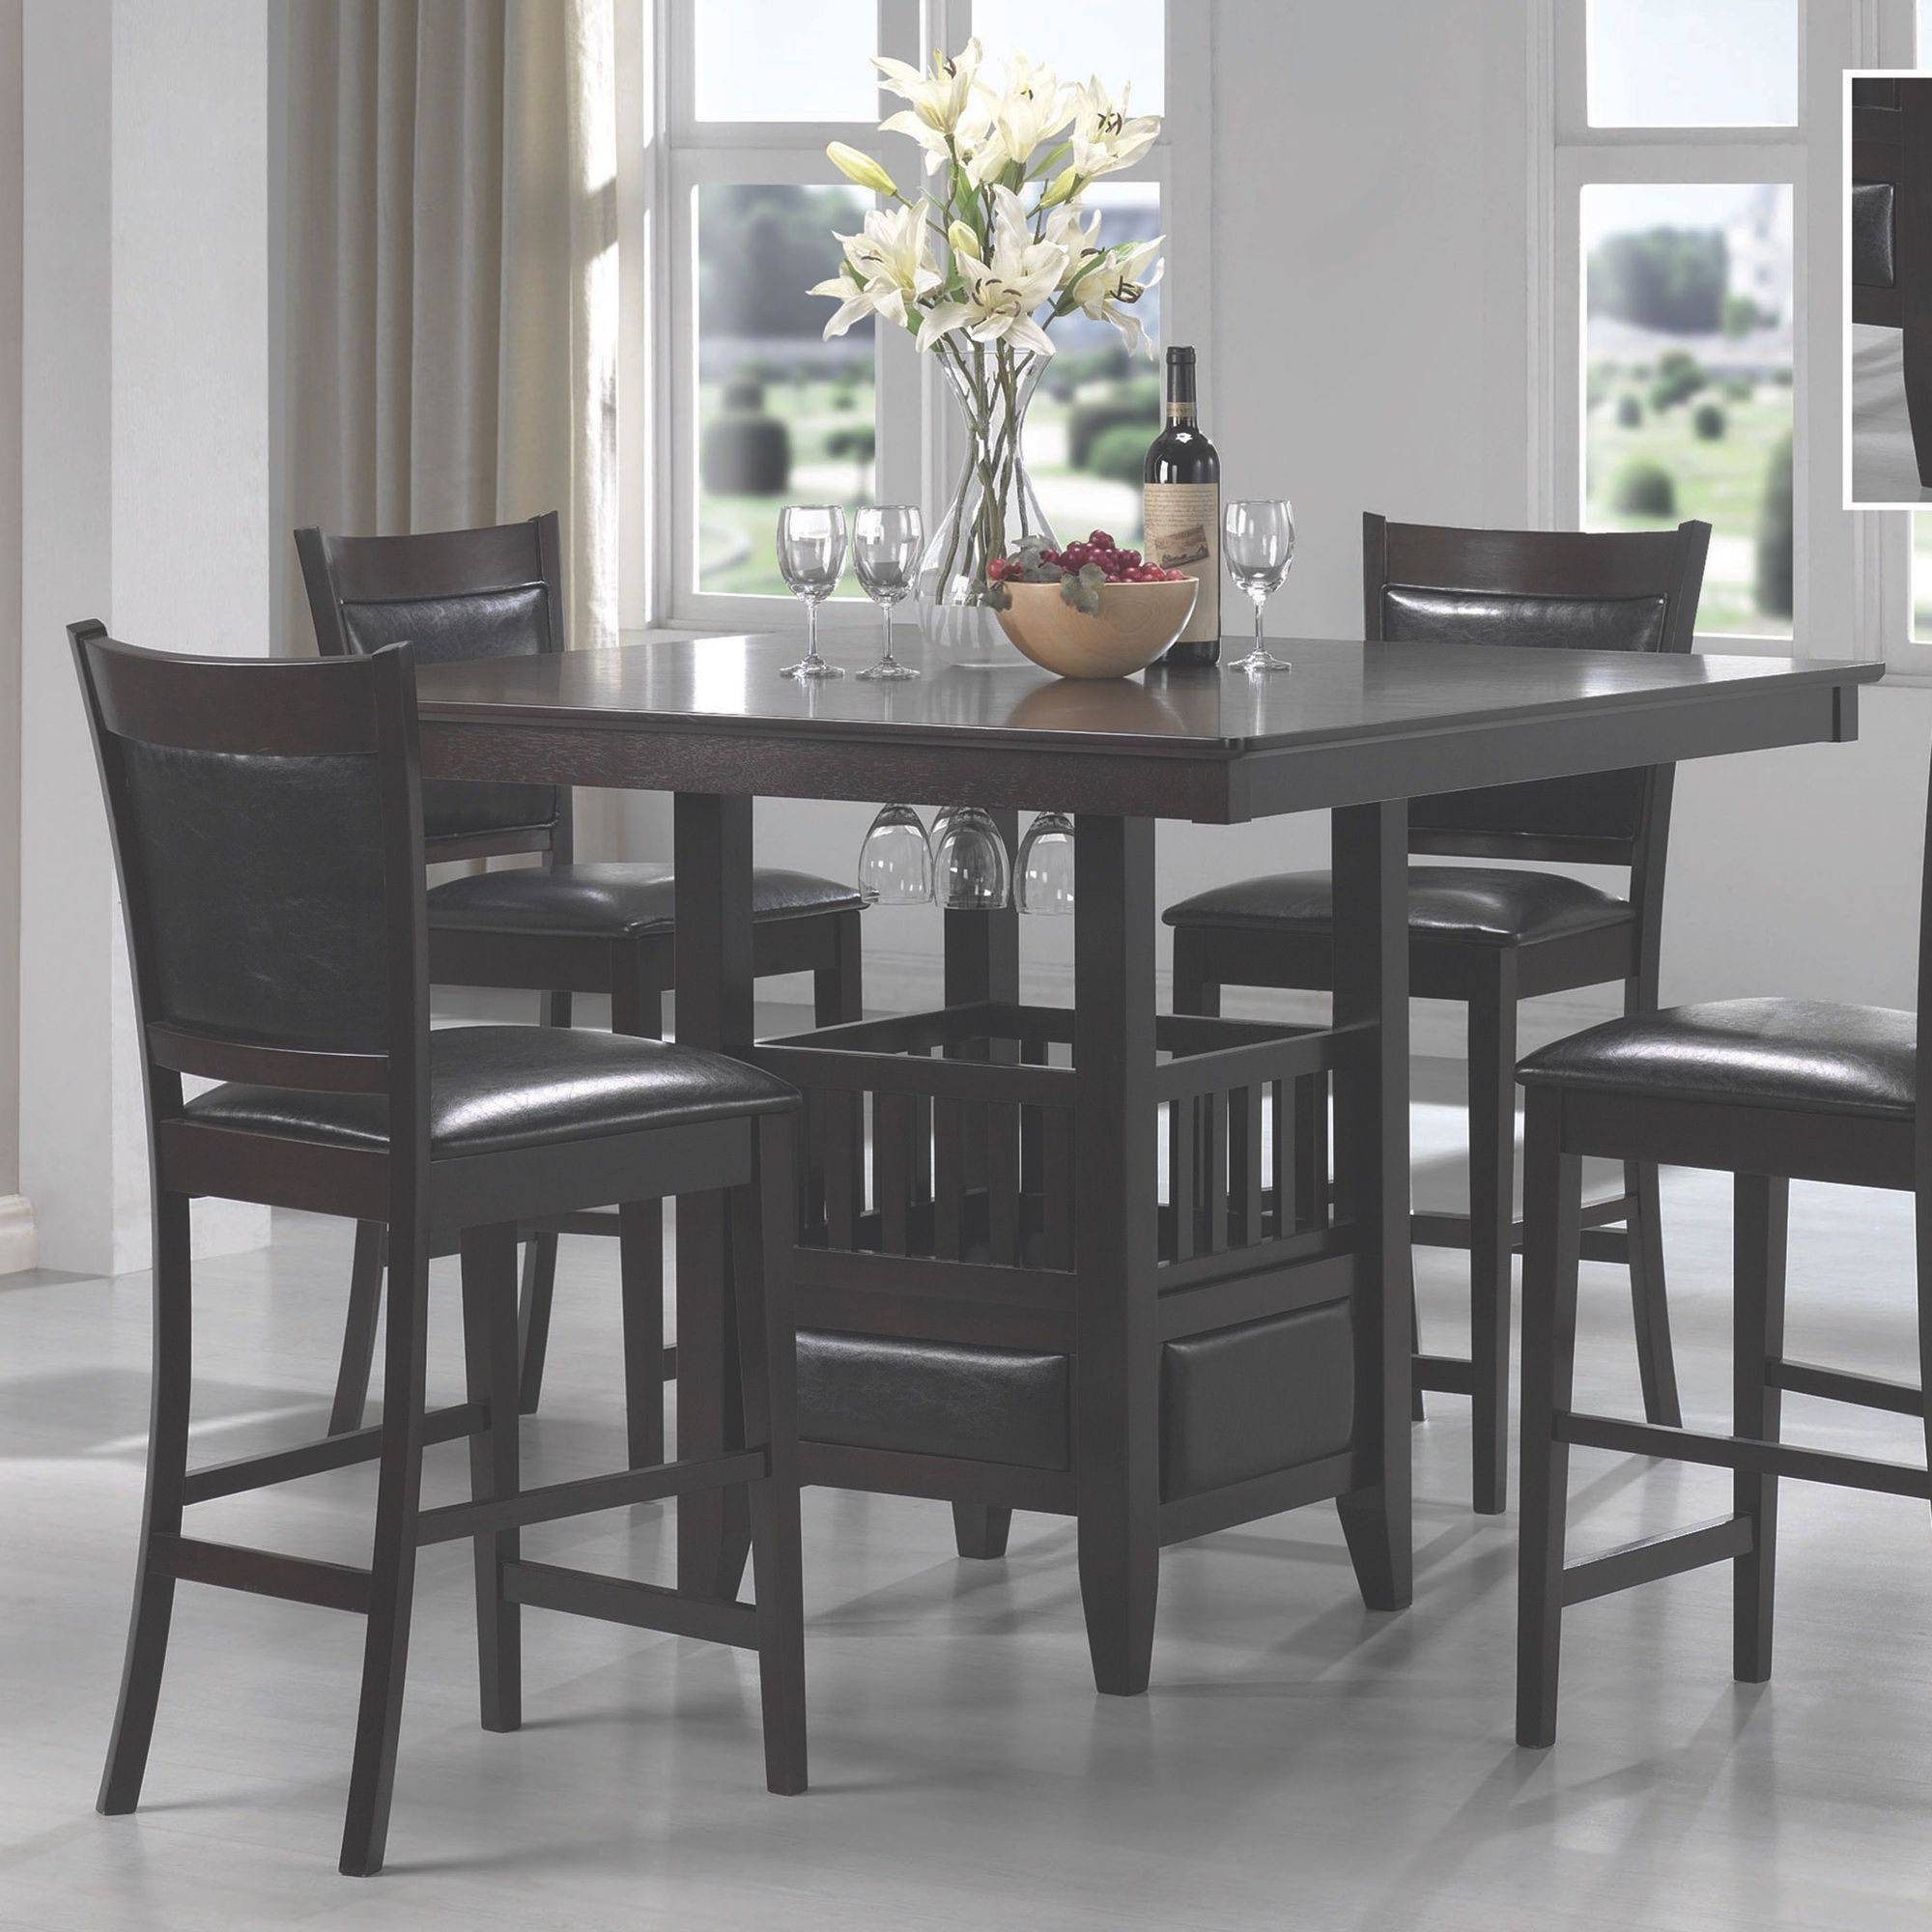 Jaden Square Counter-Height Table & Counter Height Bistro Table Sets - Foter